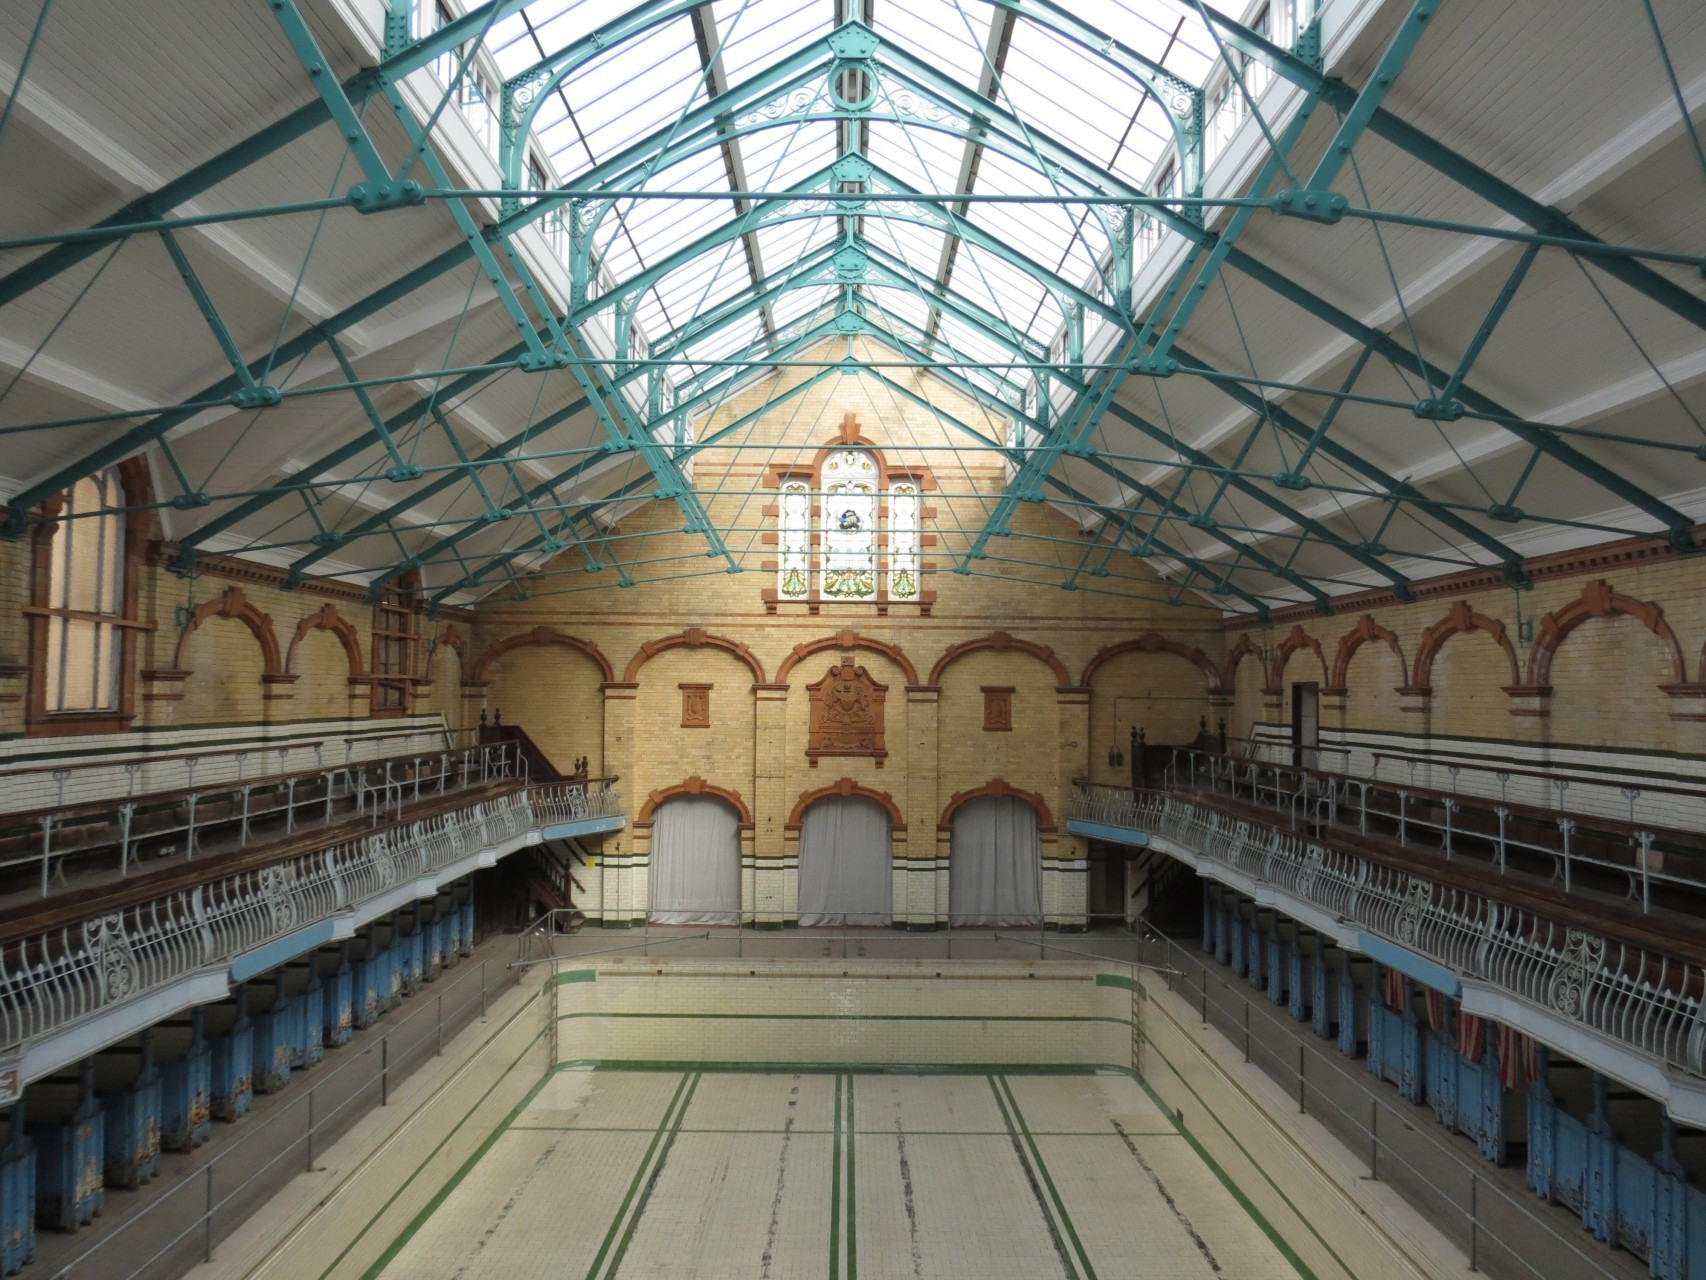 Gala Pool, Victoria Baths, Manchester